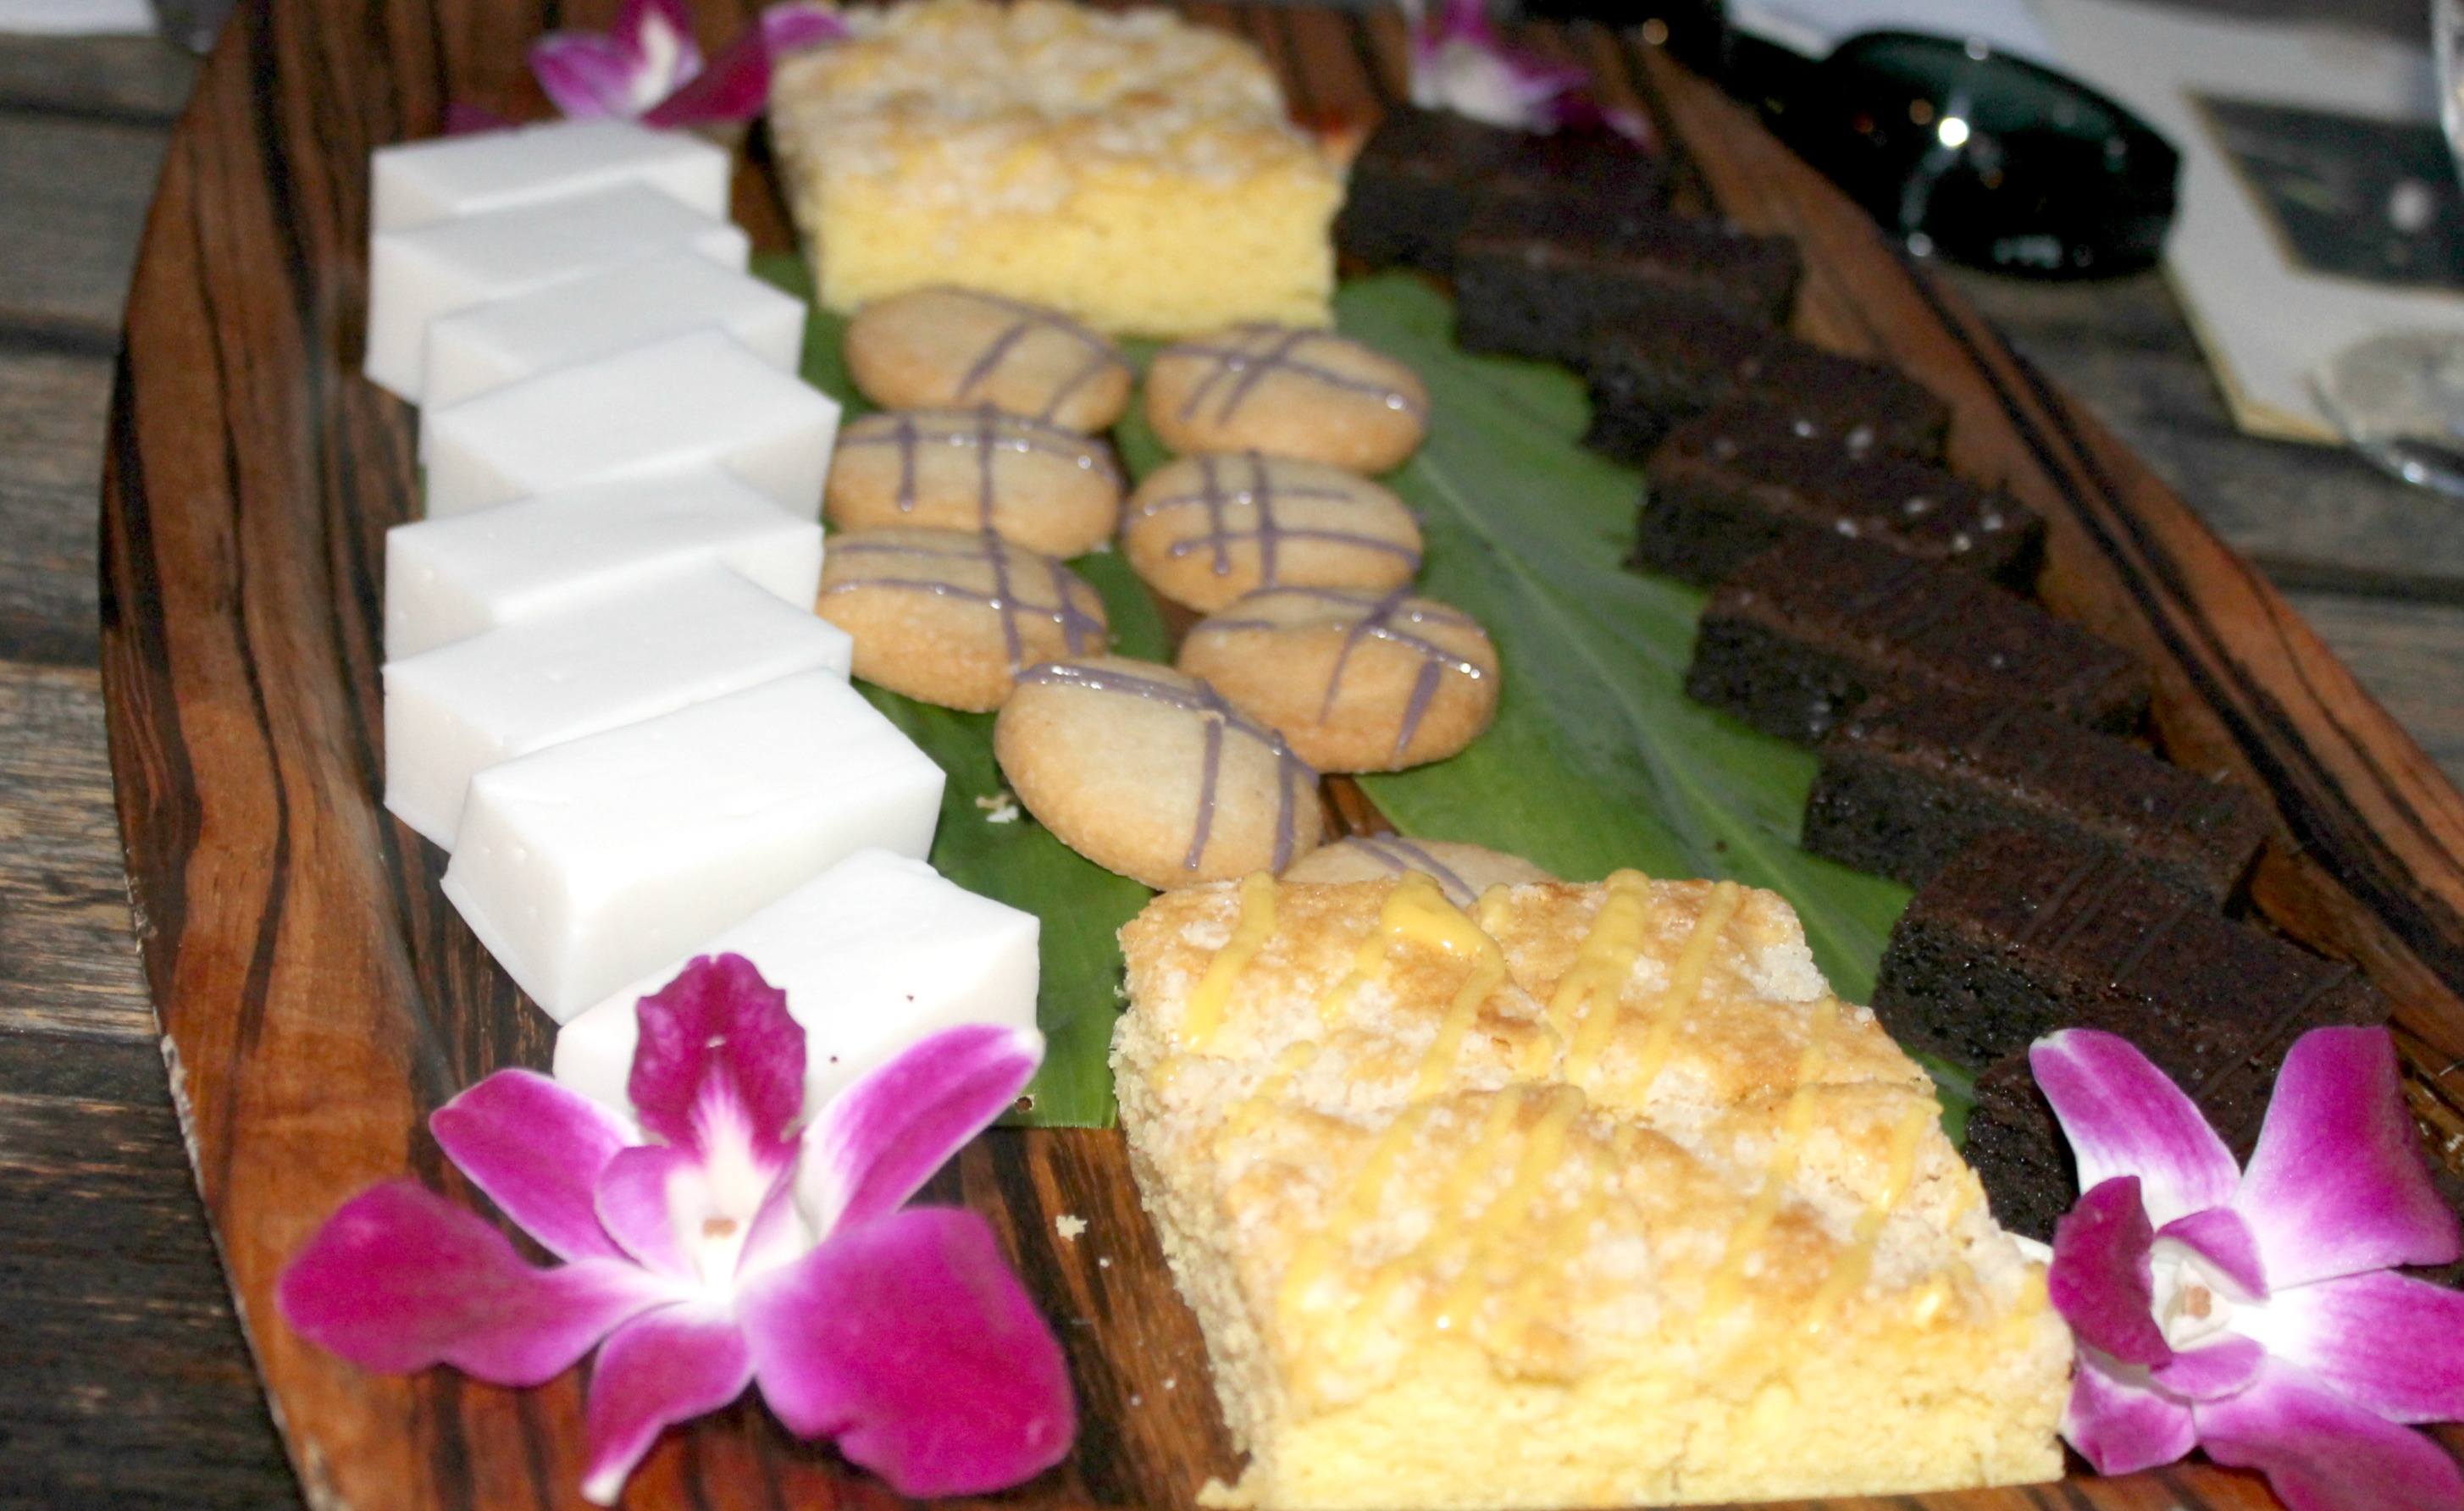 The Old Lahaina Luau dessert